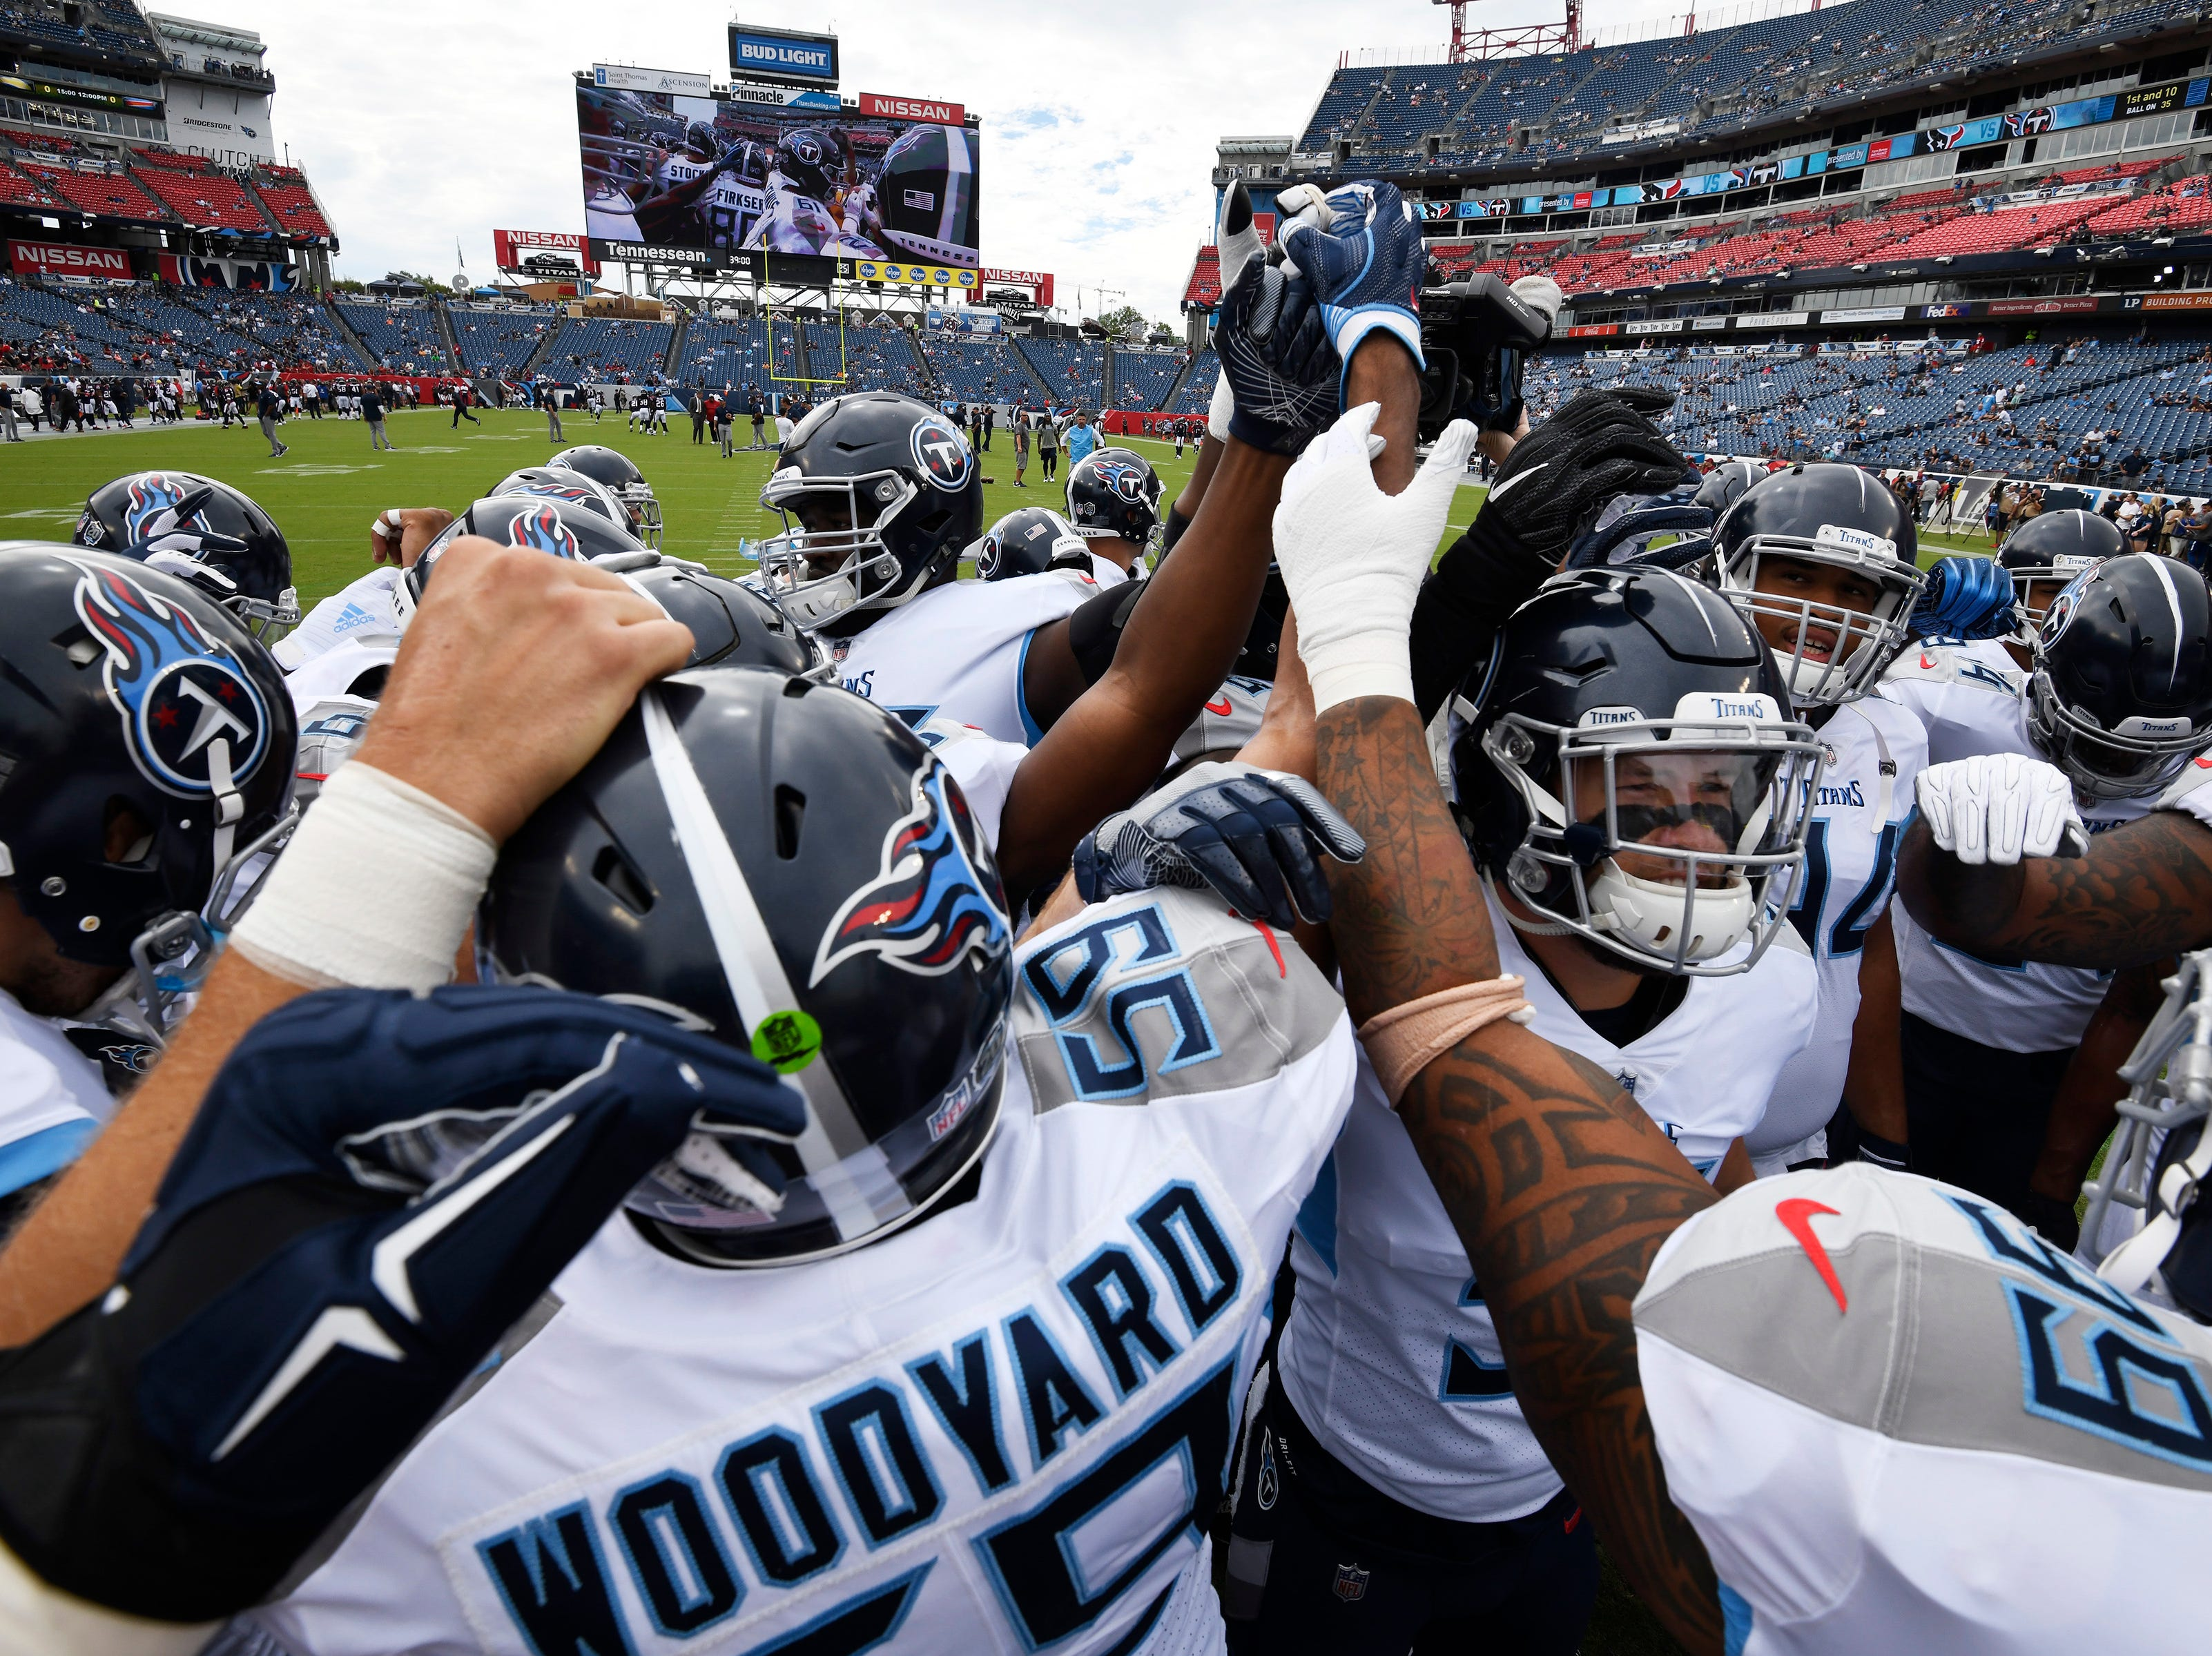 The Titans huddle before the game against the Texans at Nissan Stadium Sunday, Sept. 16, 2018, in Nashville, Tenn.